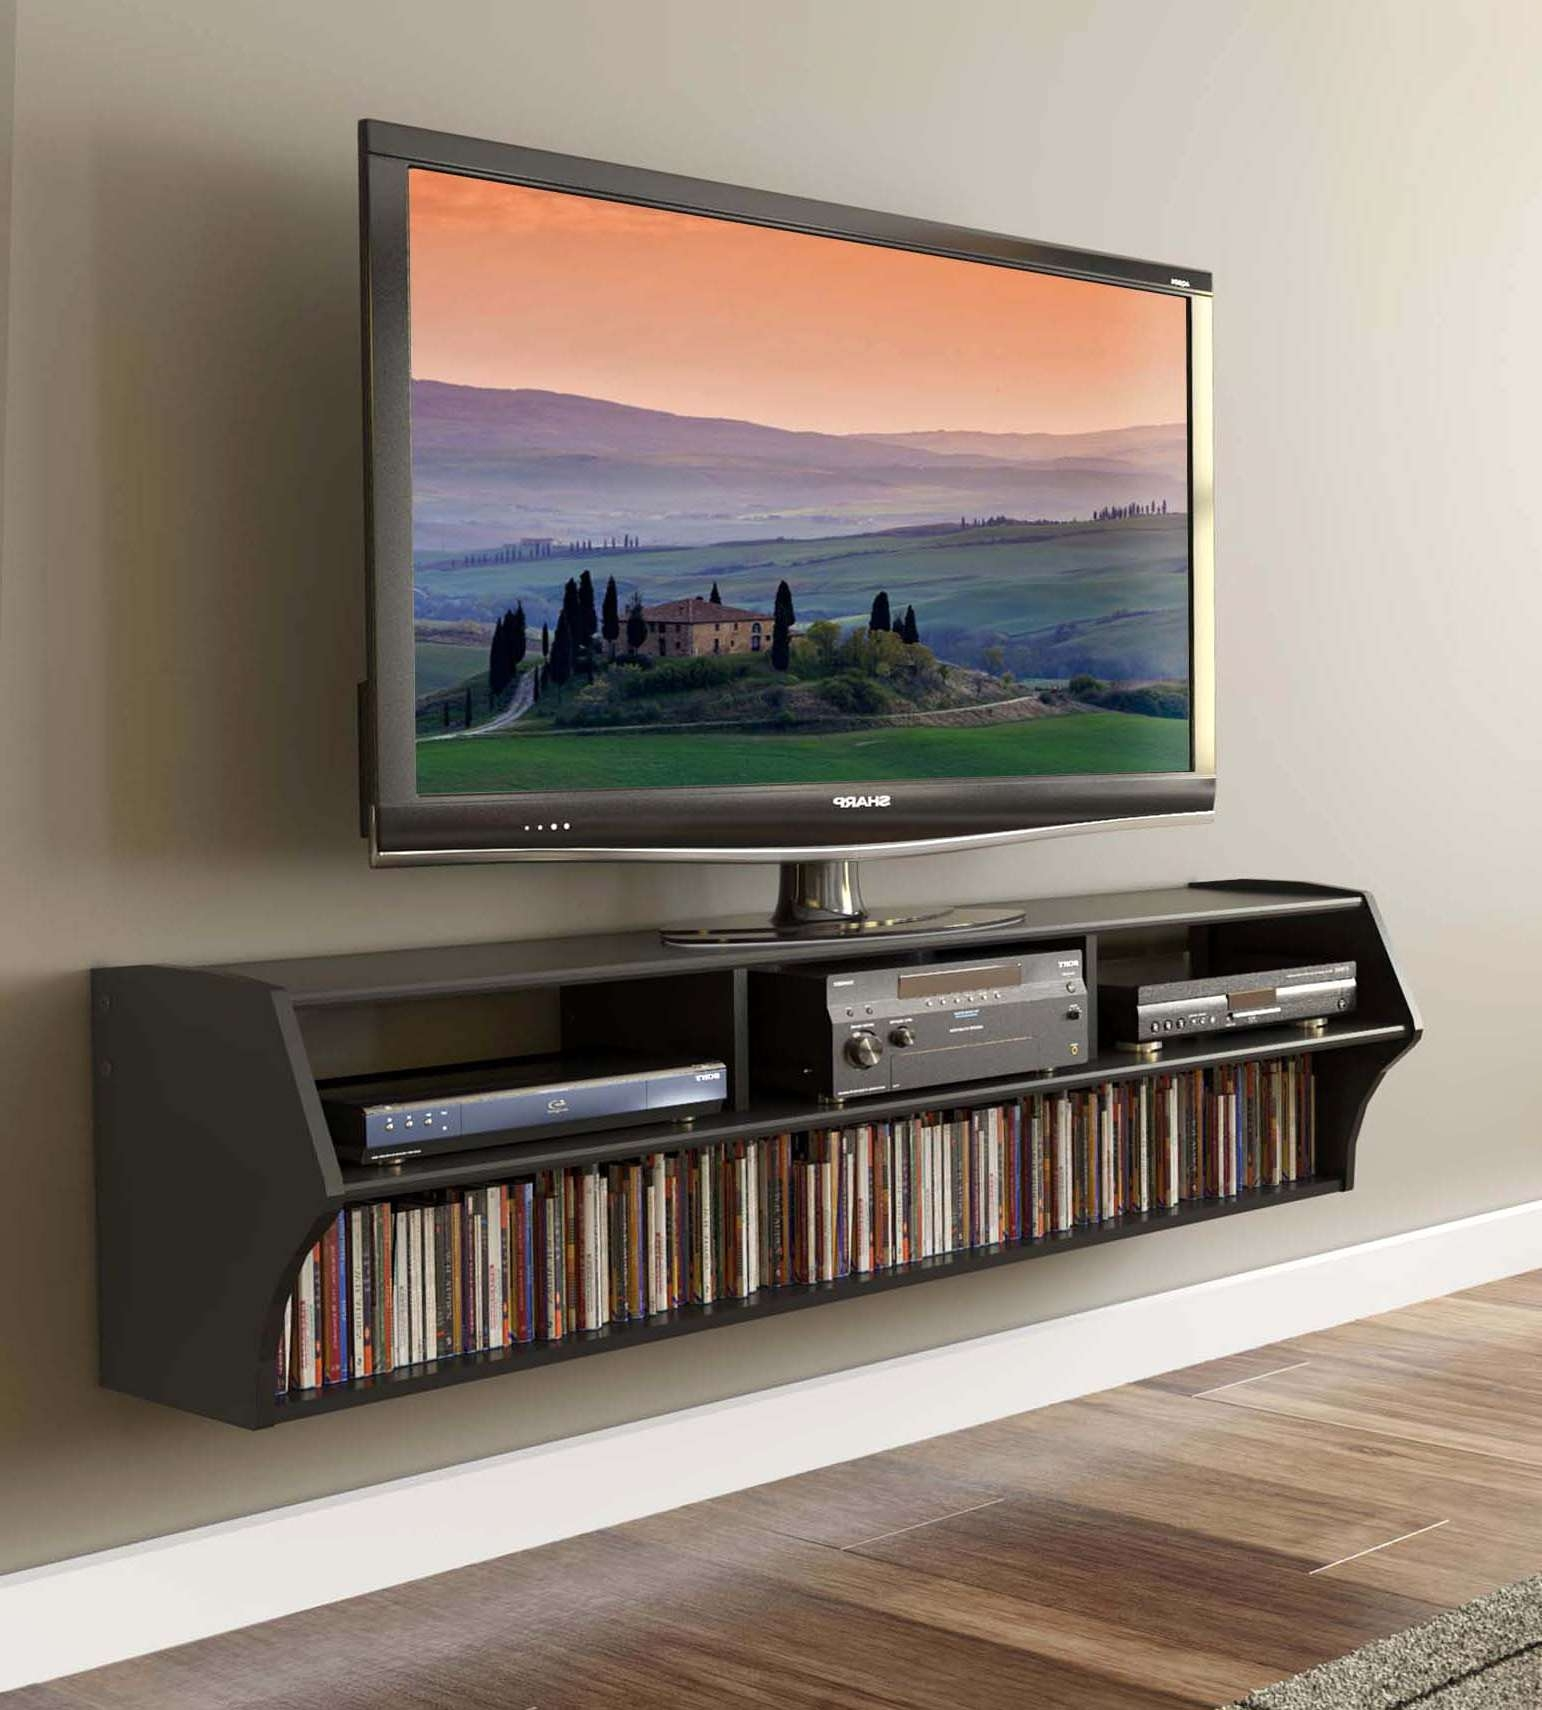 Wall Mounted Flat Screen Tv Cabinet With 58 Wide Black Wall In Wall Mounted Tv Cabinets For Flat Screens (View 13 of 20)